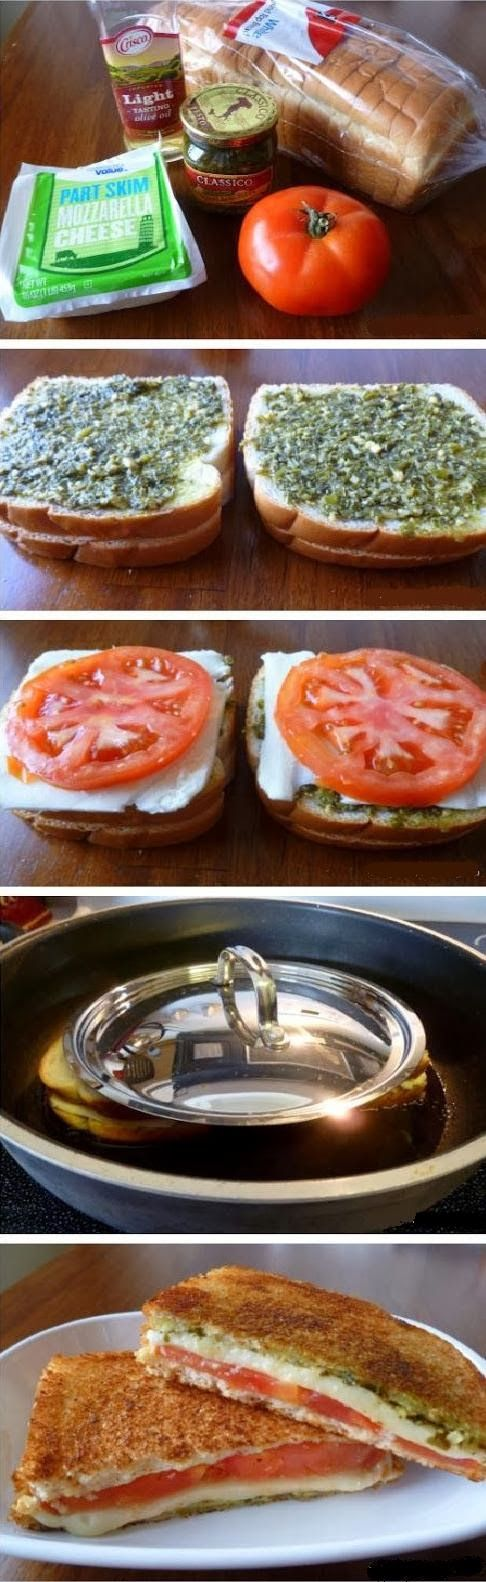 Food & Drink: Grilled cheese (I'll use vegan) tomato and pesto sandwich. Perfect with Udi's Gluten Free bread!